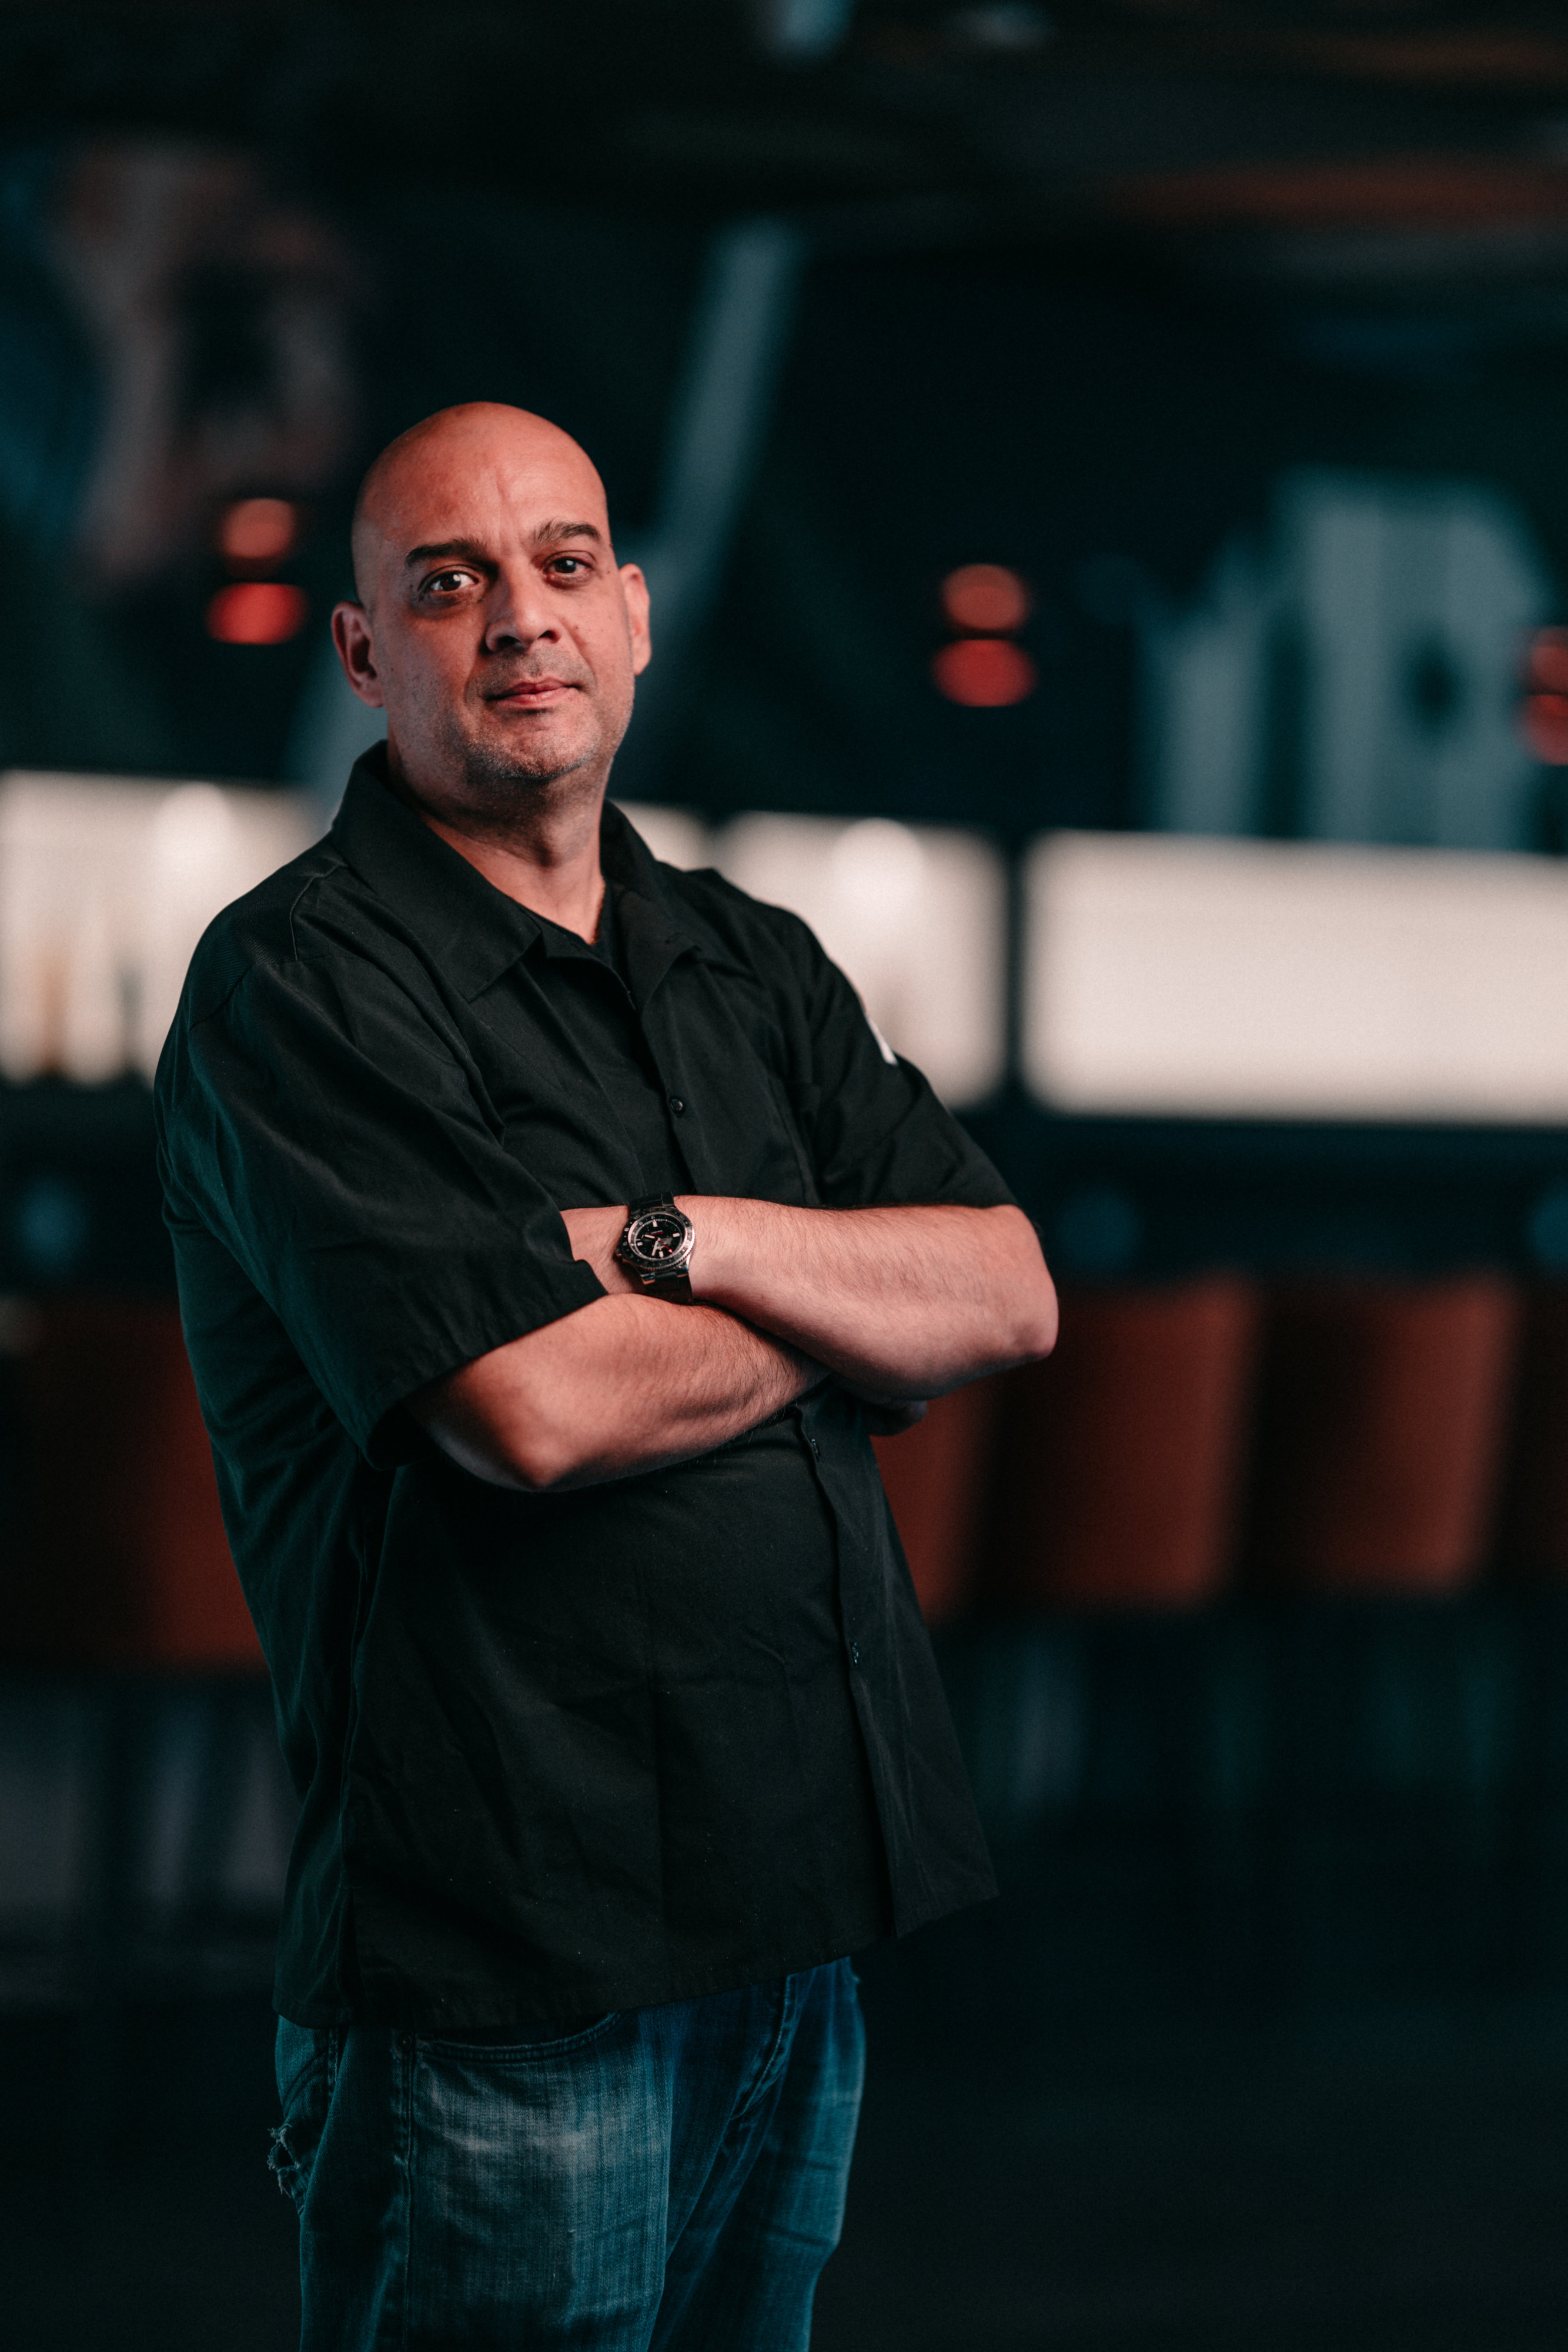 Chef Eleftherios Natas is bringing a global perspective to the small plate menu. Photo by Timothy Yantz.